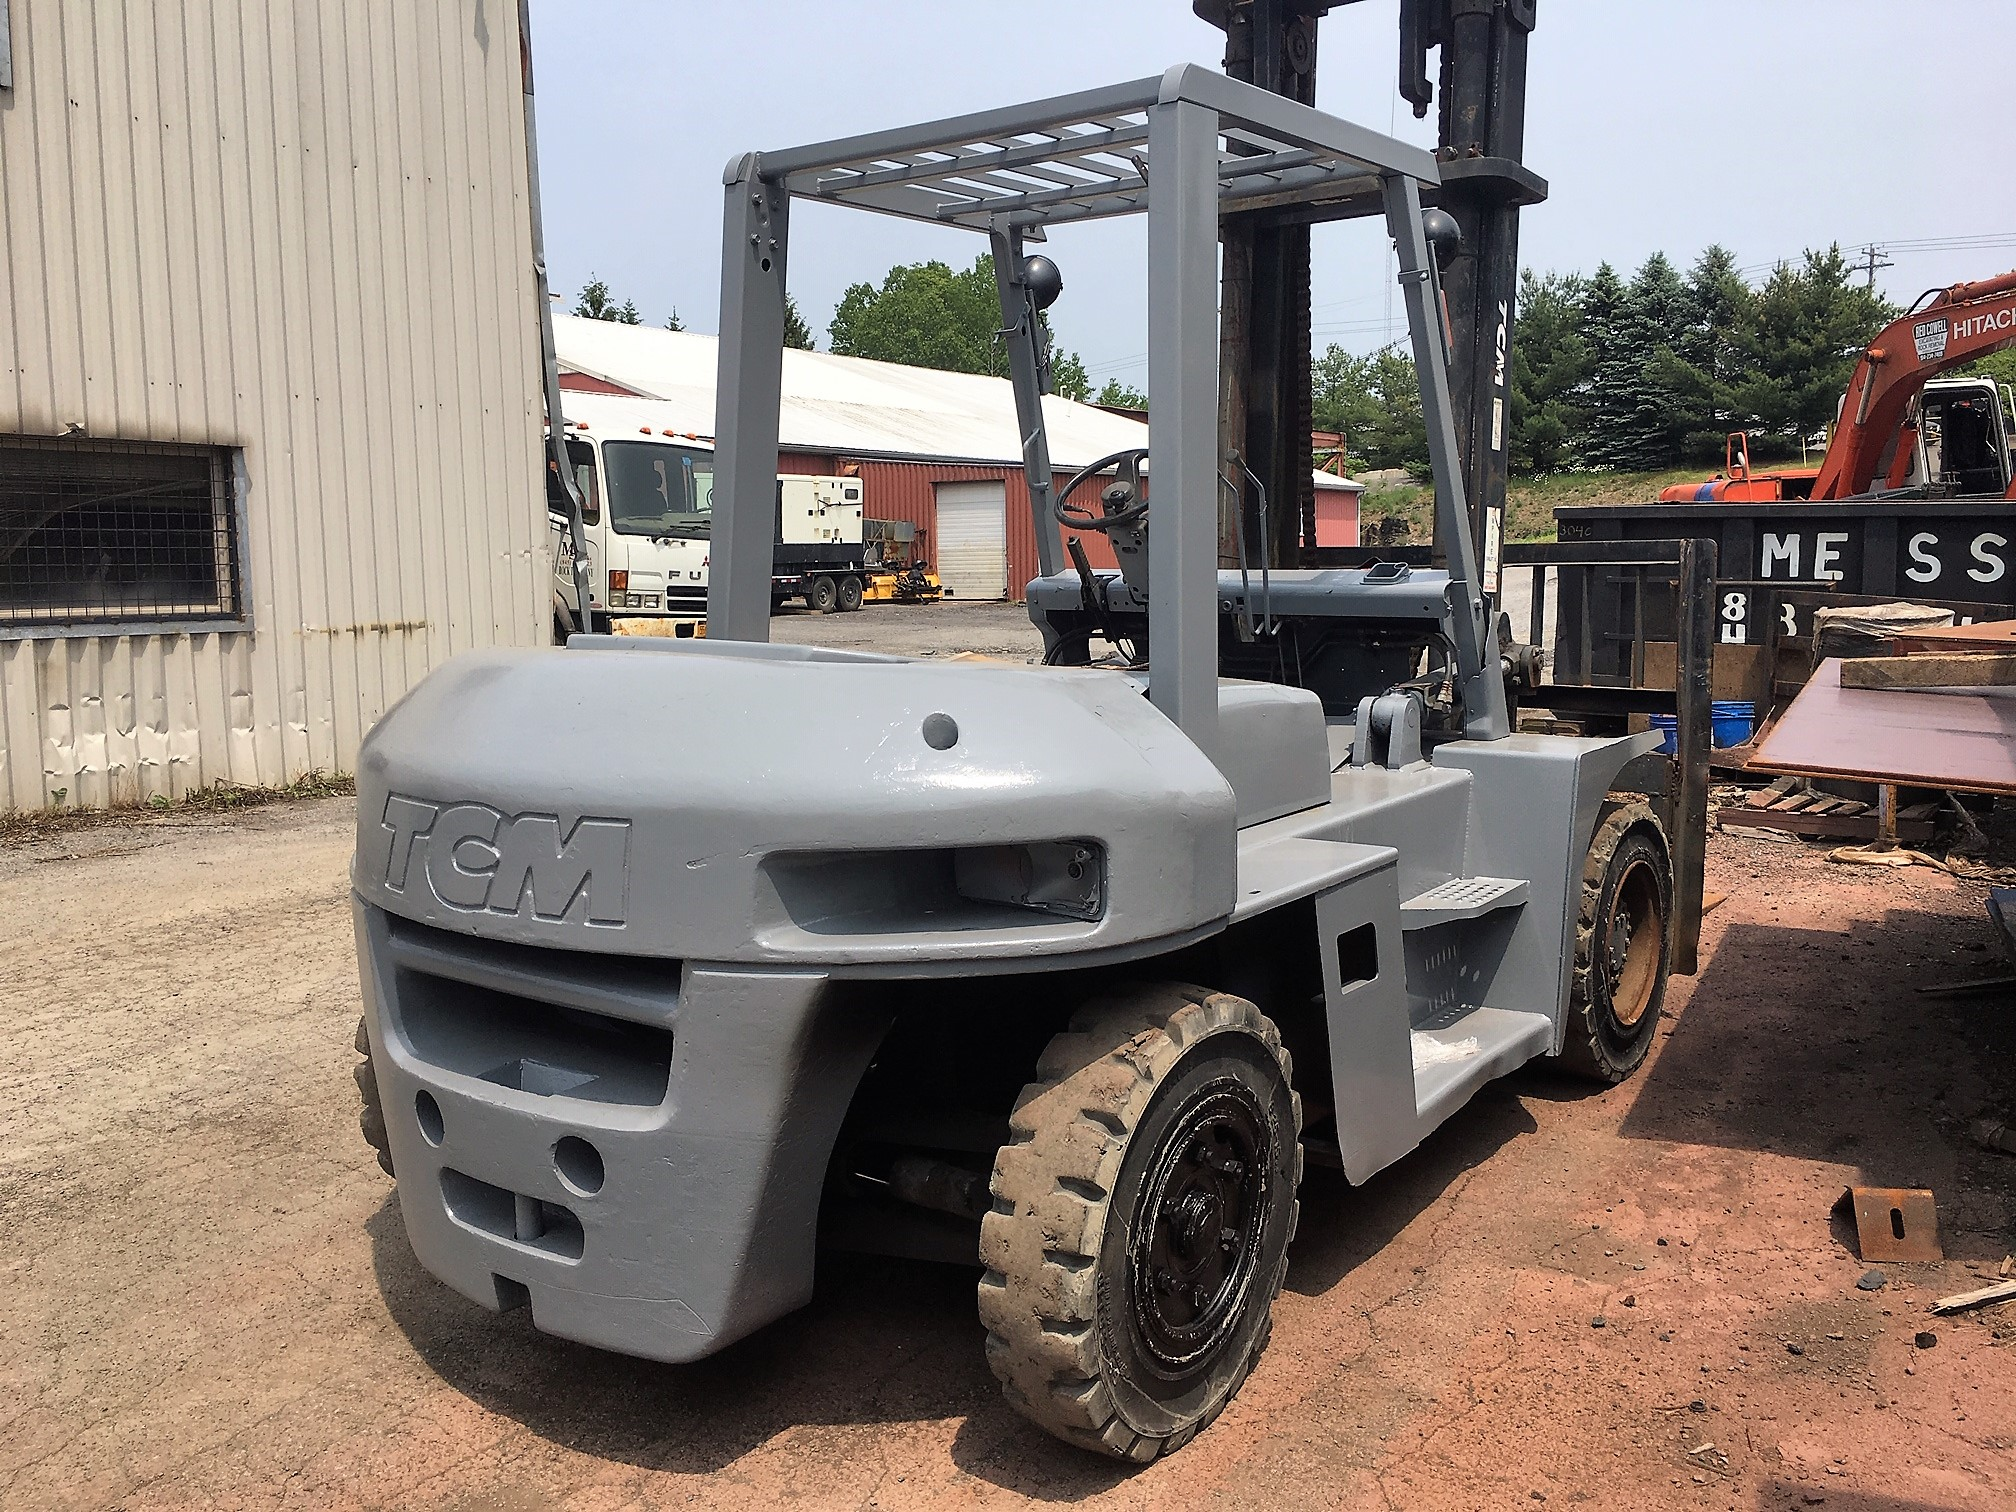 tmc 70 forklift near me for sale (2) - United Exchange USA